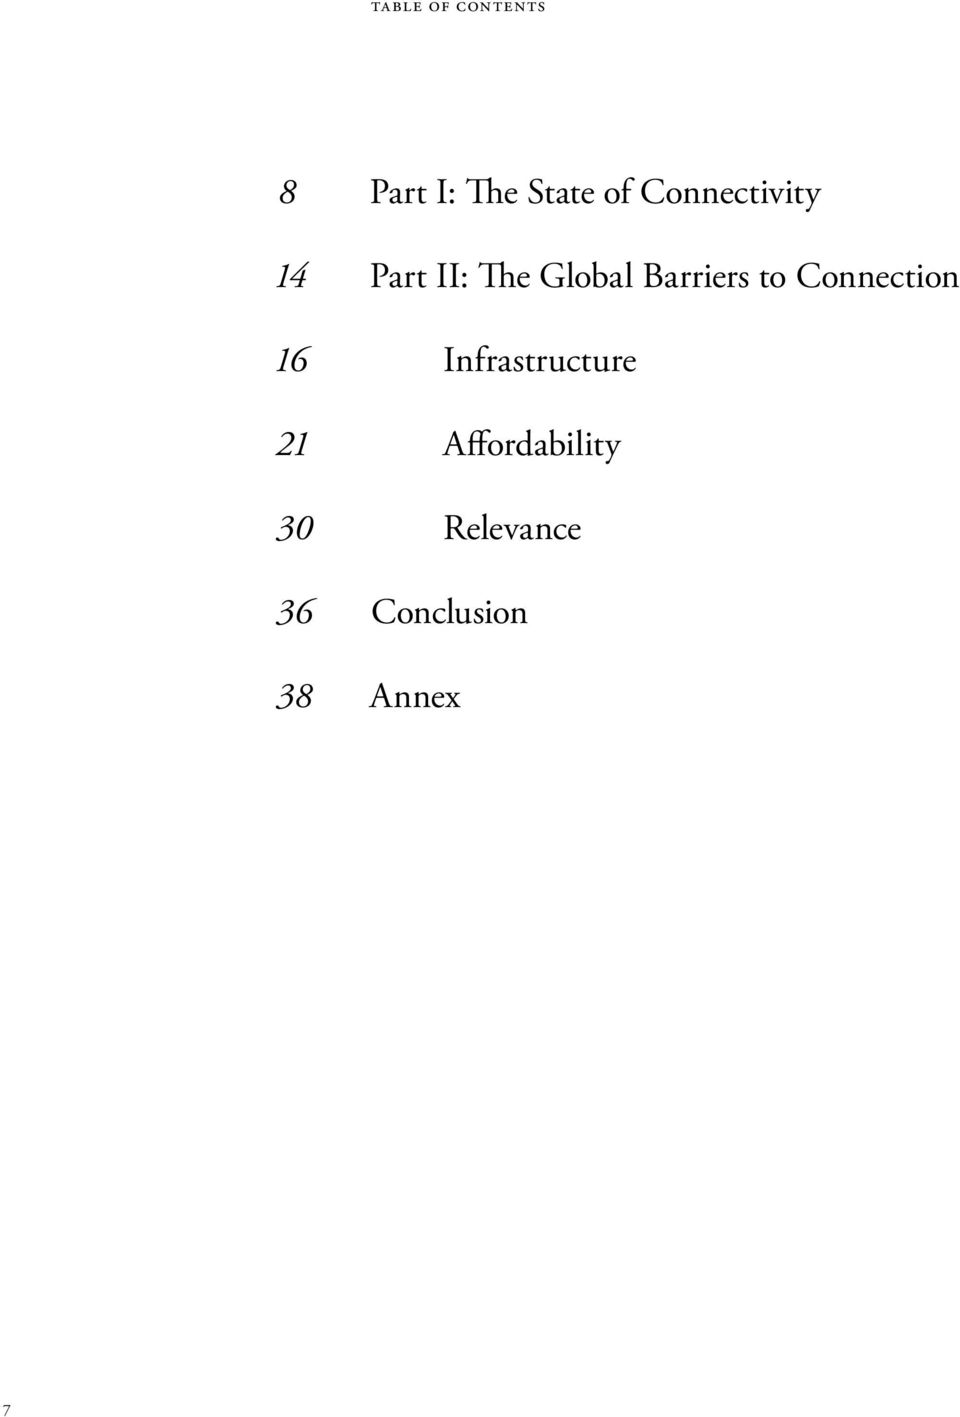 Global Barriers to Connection